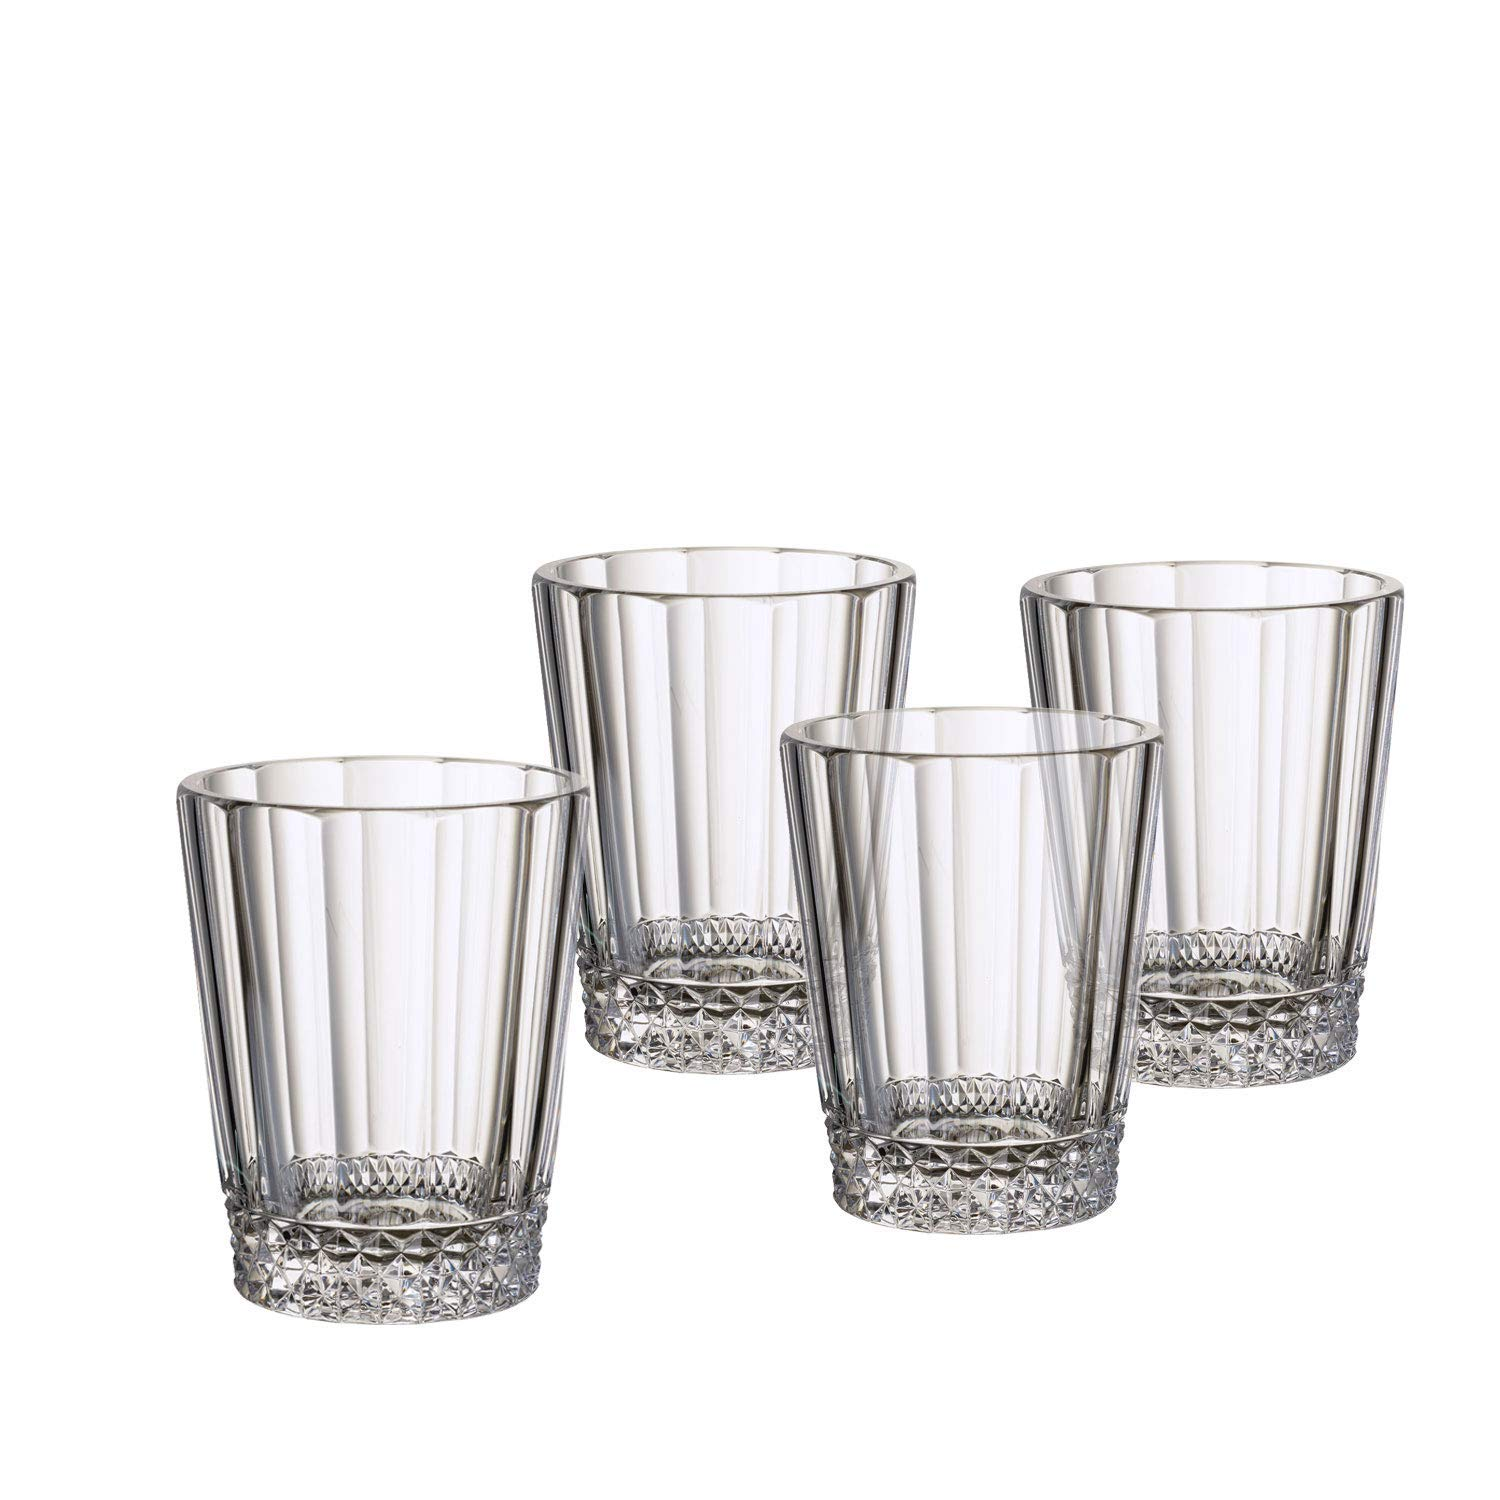 Villeroy & Boch 11-3789-8140 Opera Water Glass Set, Crystal